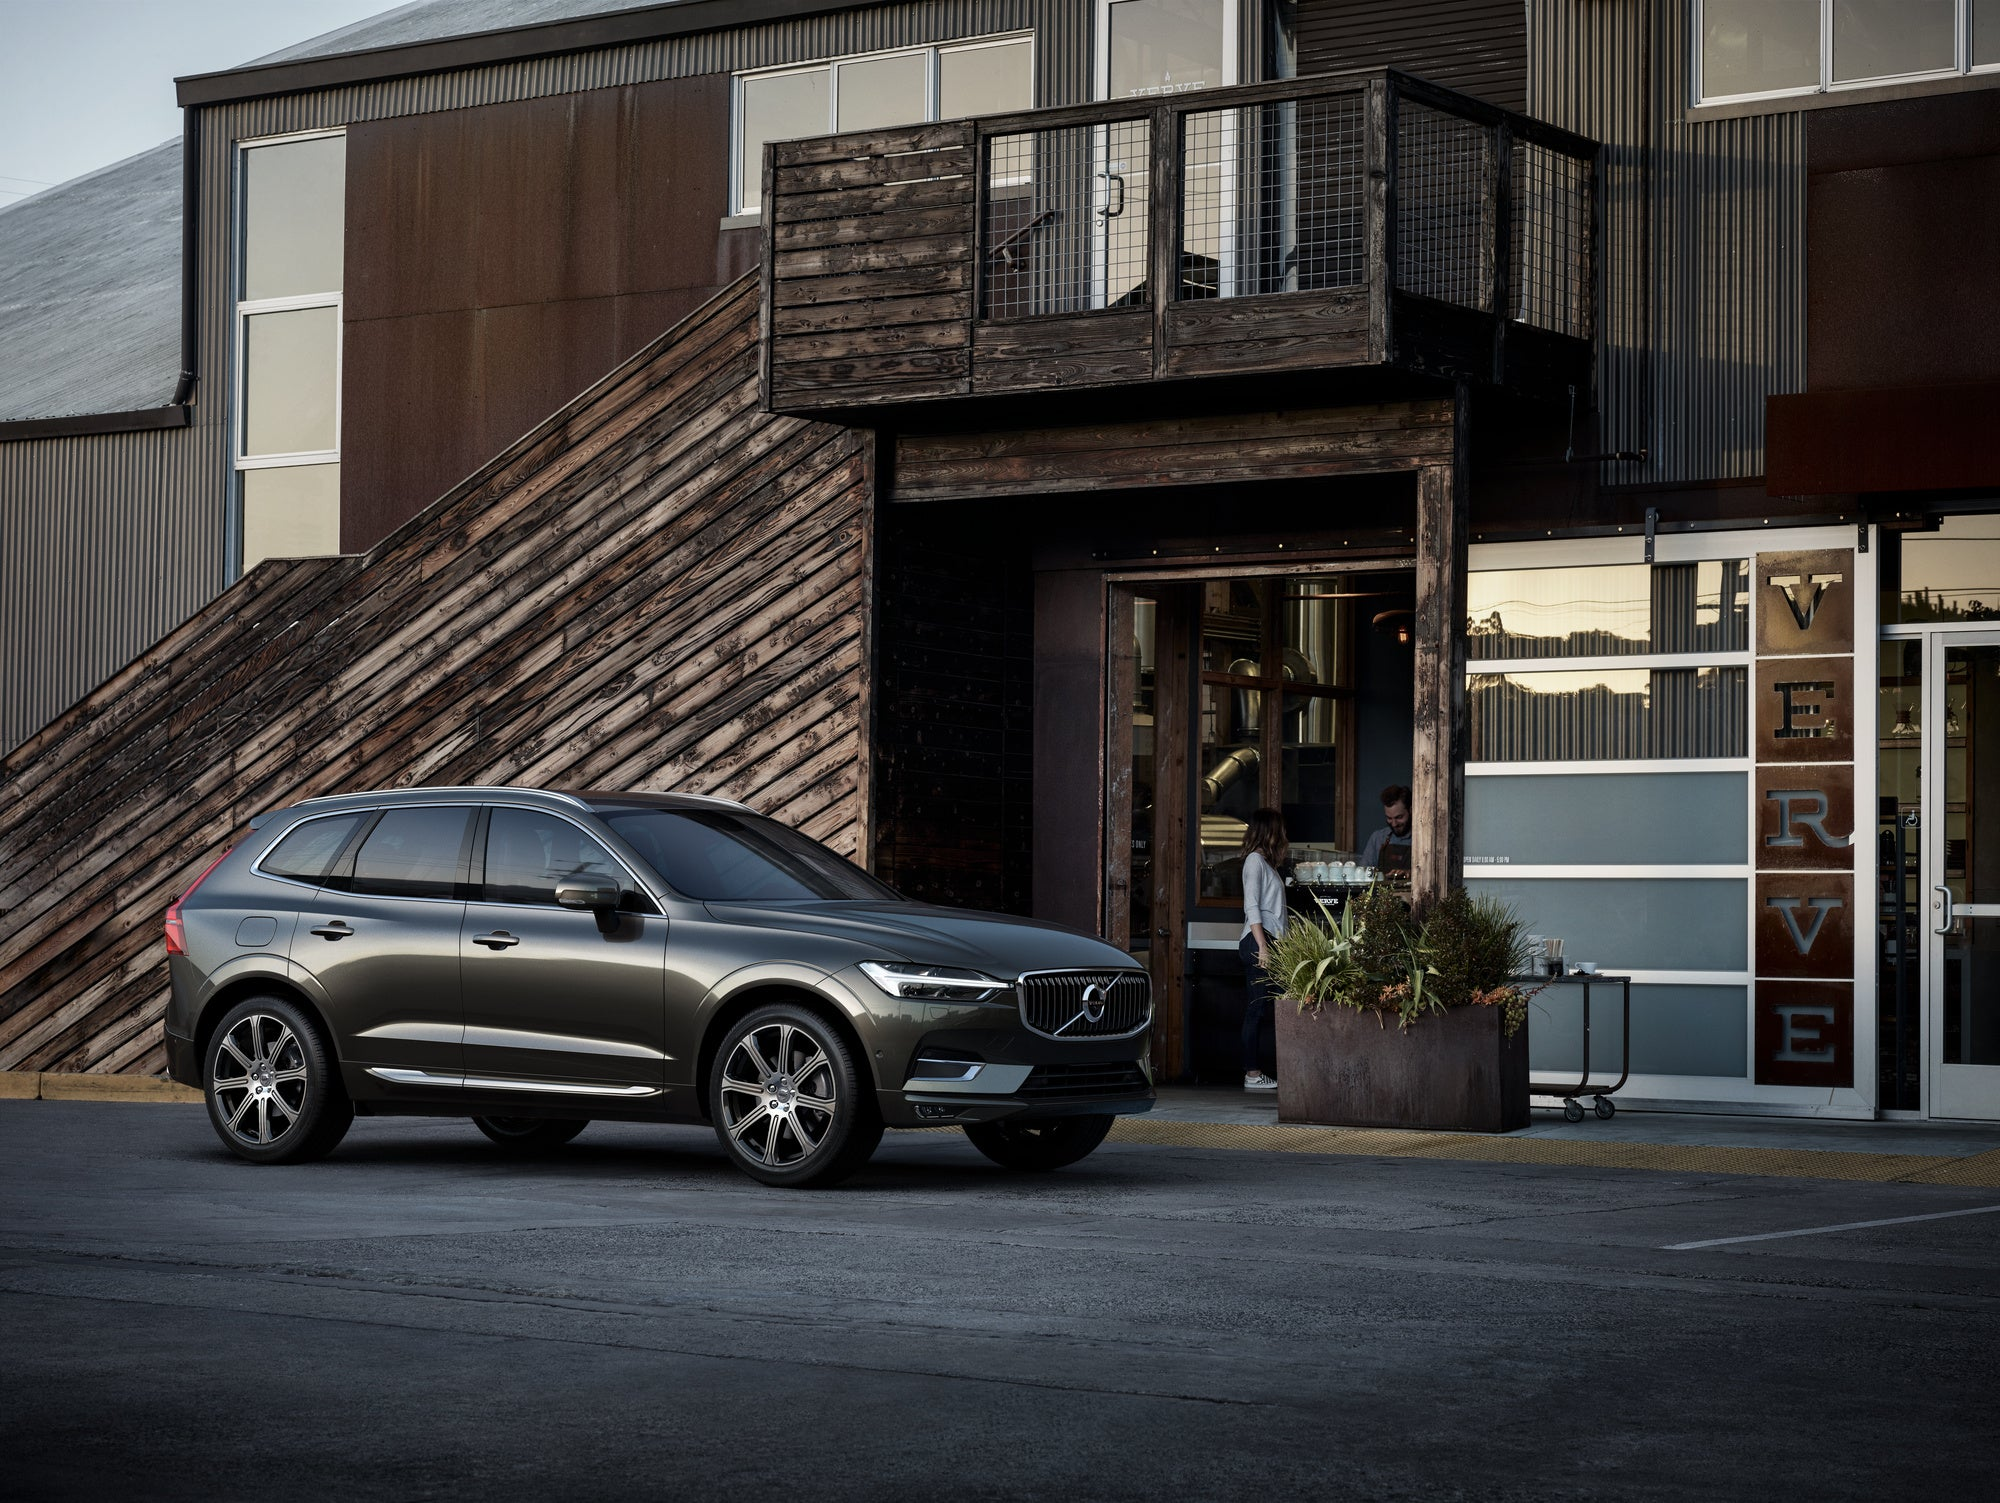 Volvo to display XC90 and XC60 models at The Sustainable City Horse Show 01